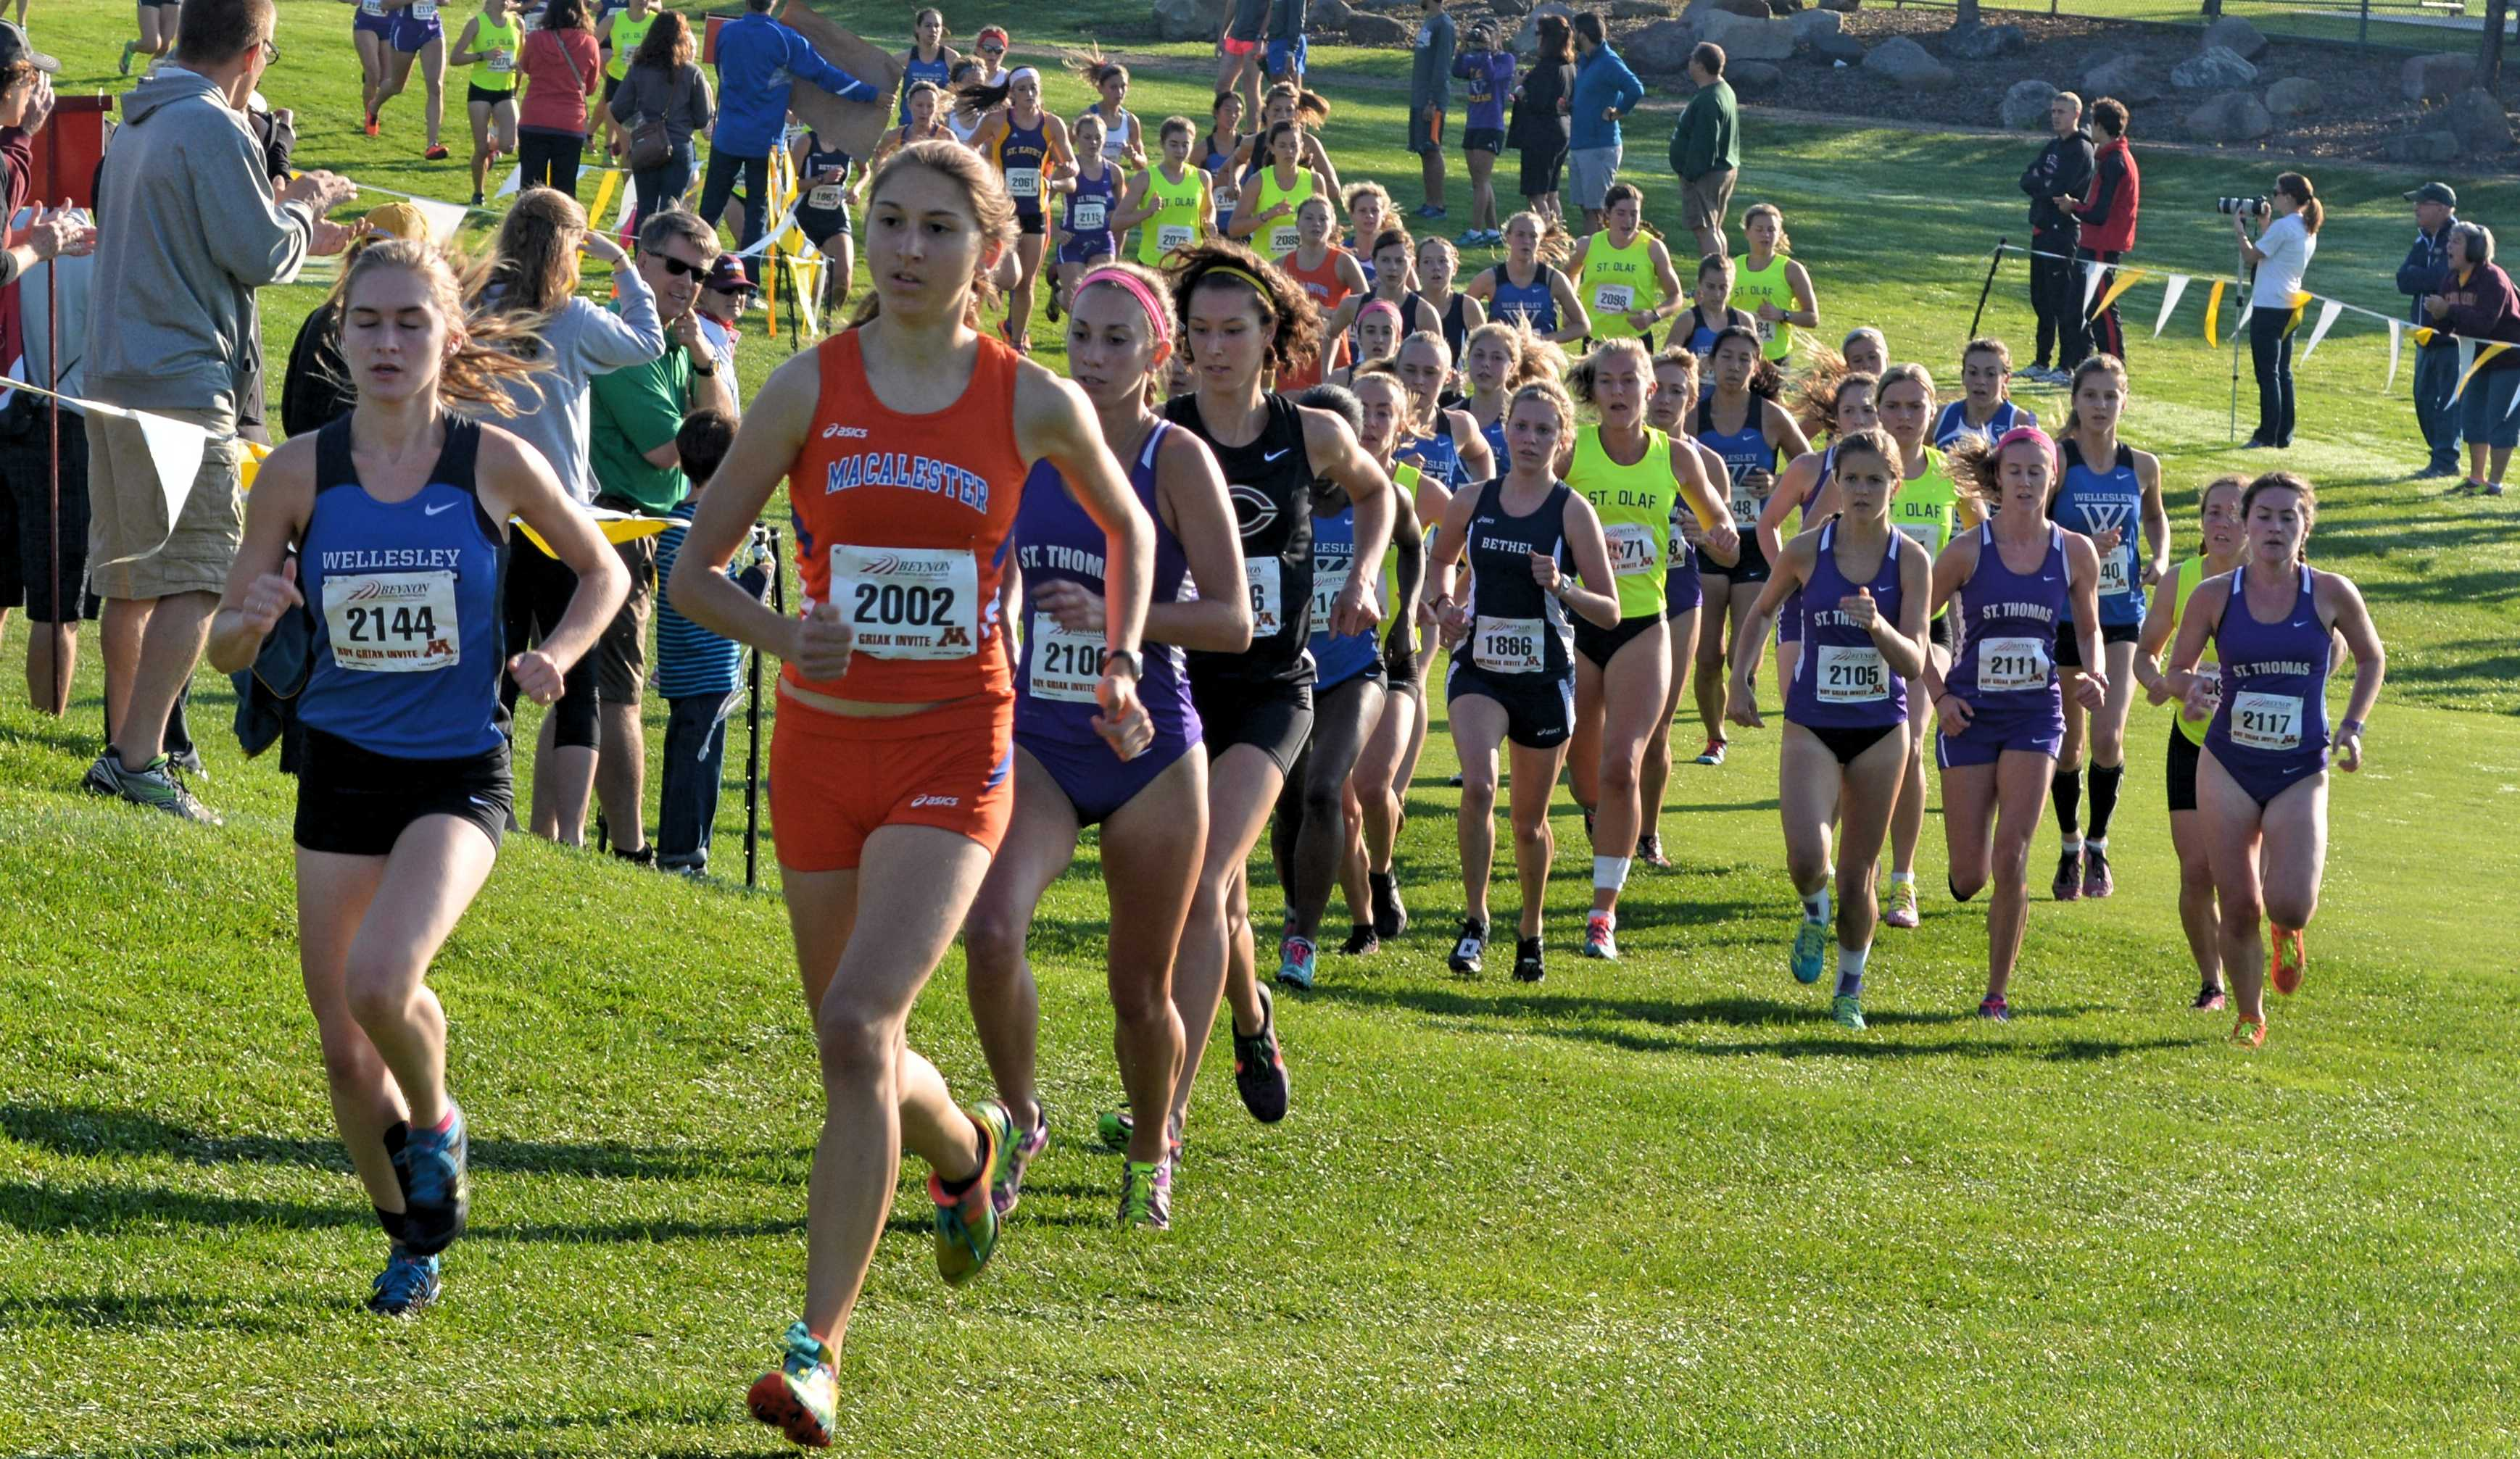 Kimber Meyer '17 won the Griak meet on Saturday, Sept. 26. Her victory is the first ever individual Griak title for a Macalester runner. Meyer won the race by approximately 30 seconds, finishing the six kilometer course in 22:57. Photo by Anders Voss '16.